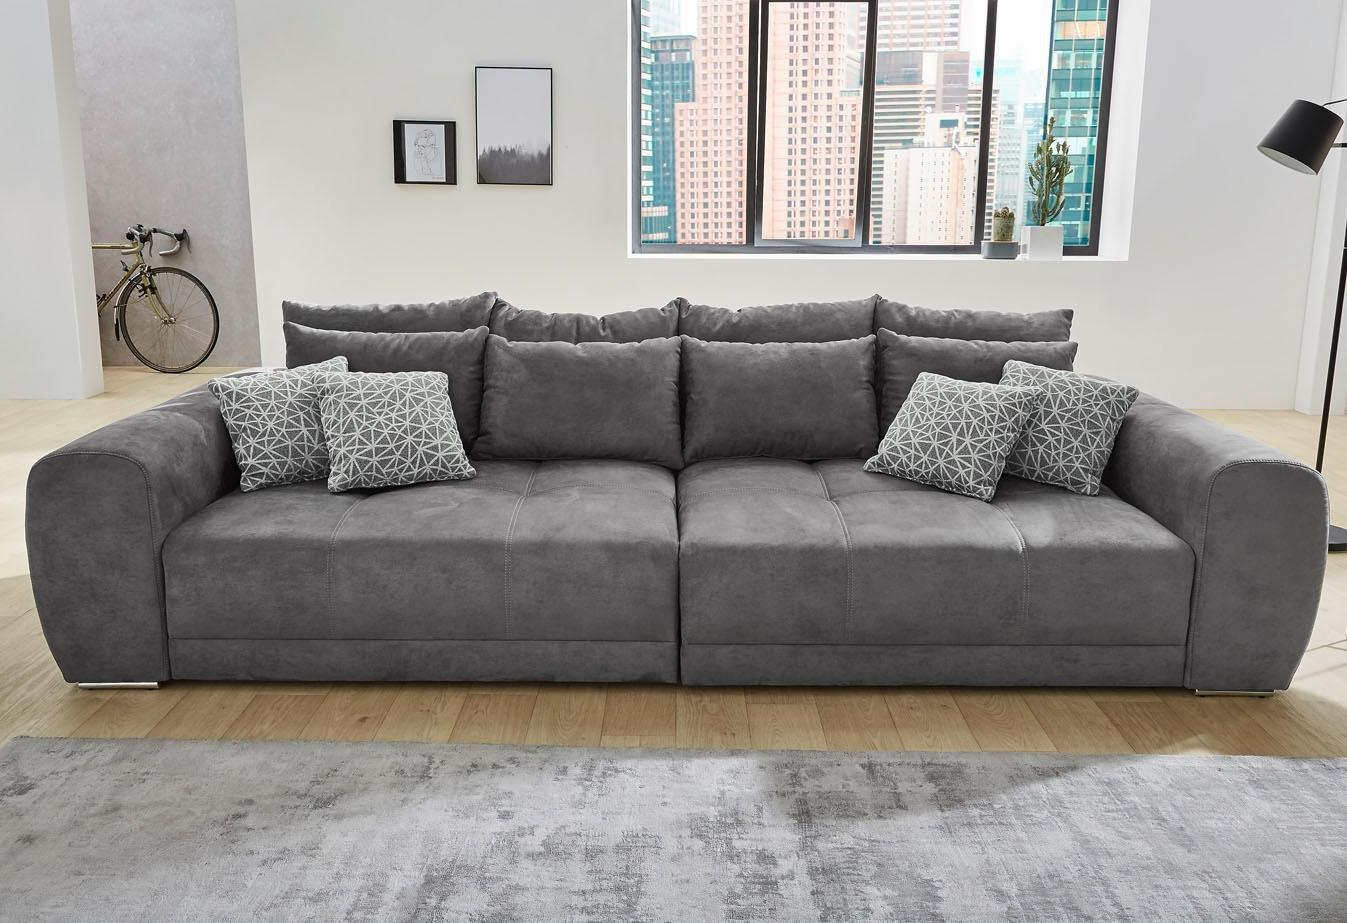 Big Sofa 290 Cm What To Consider While Buying A Big Sofa Yonohomedesign